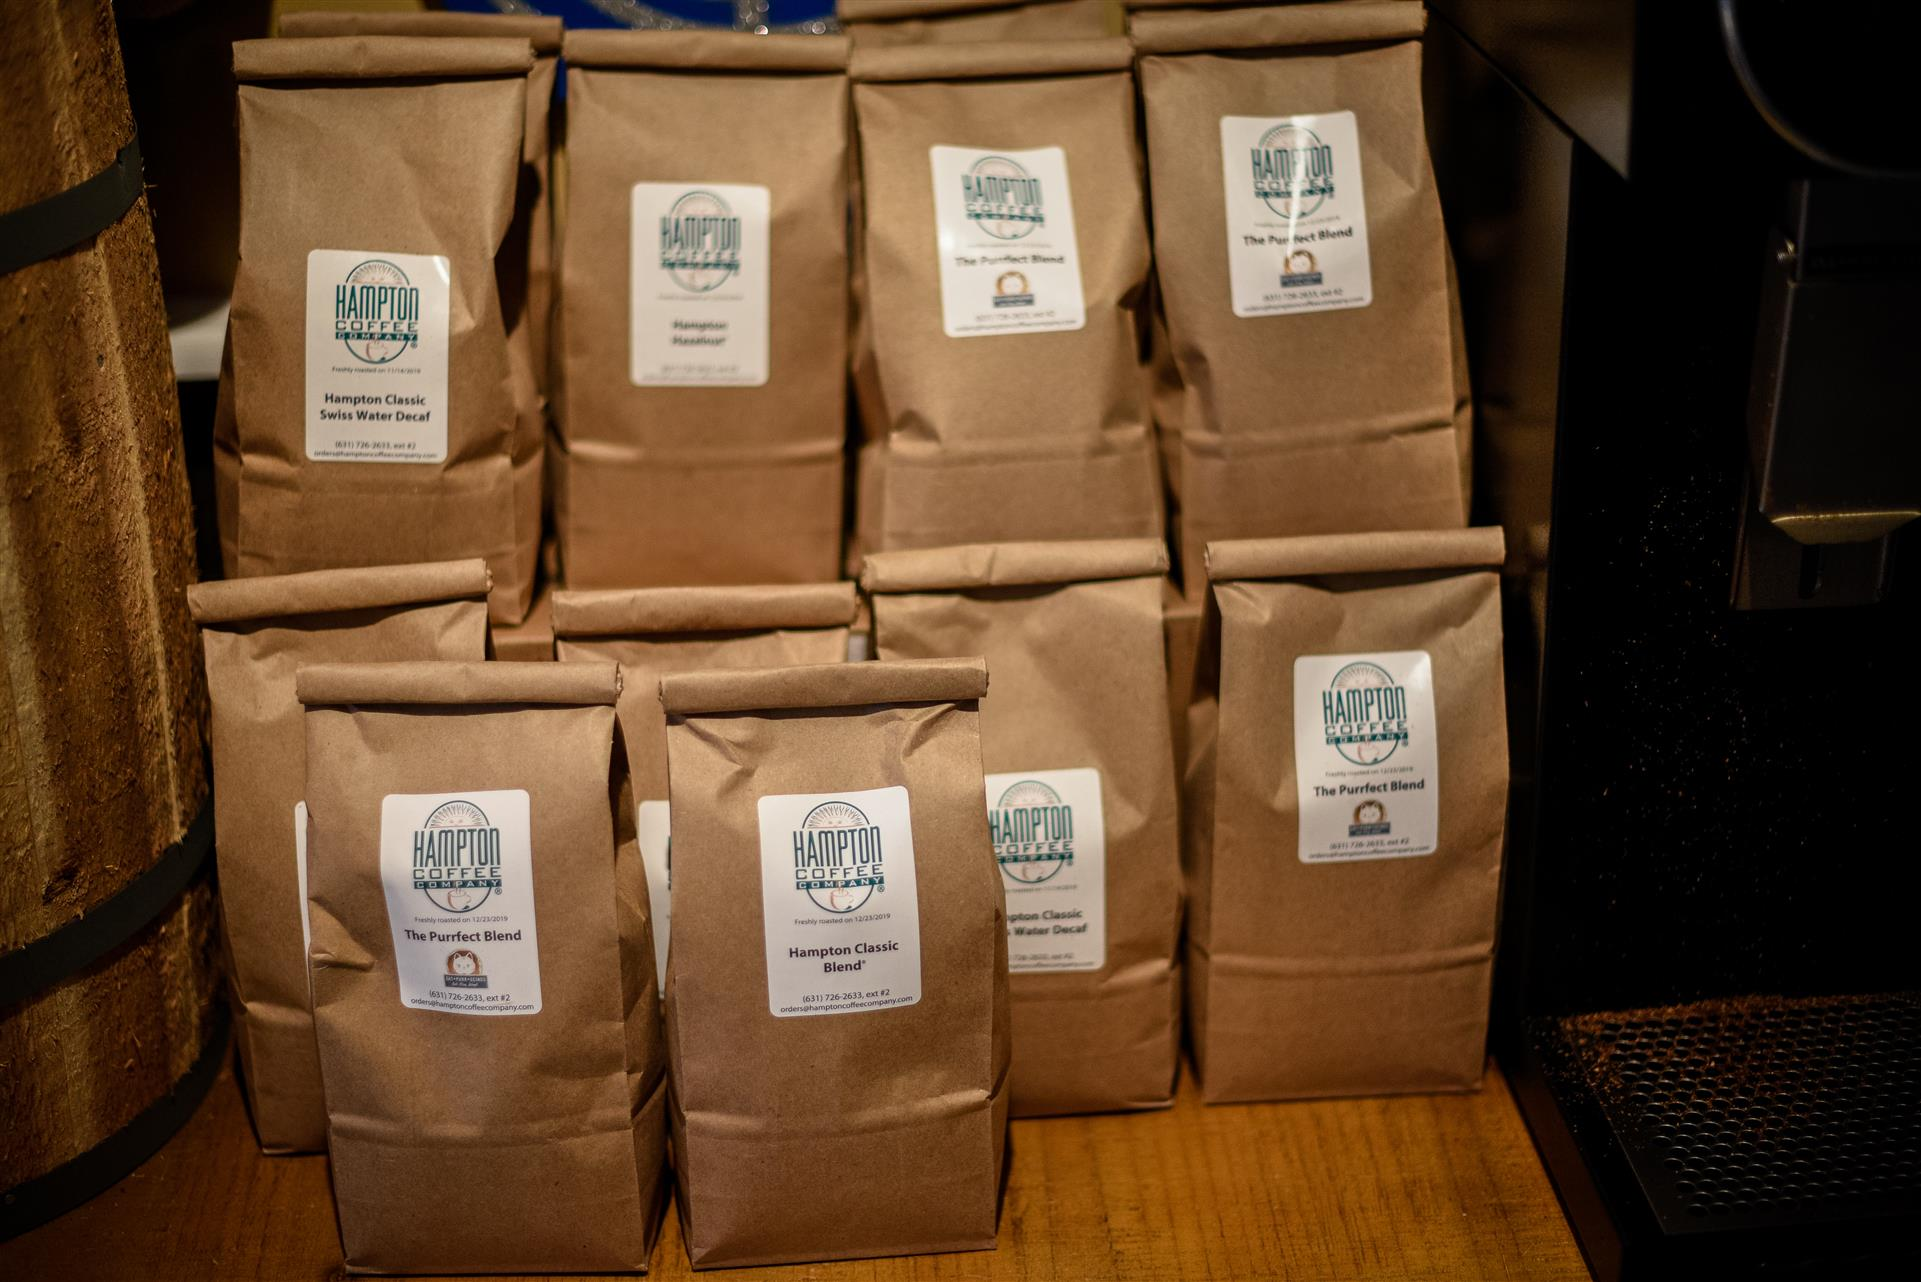 Many bags of coffee on table.